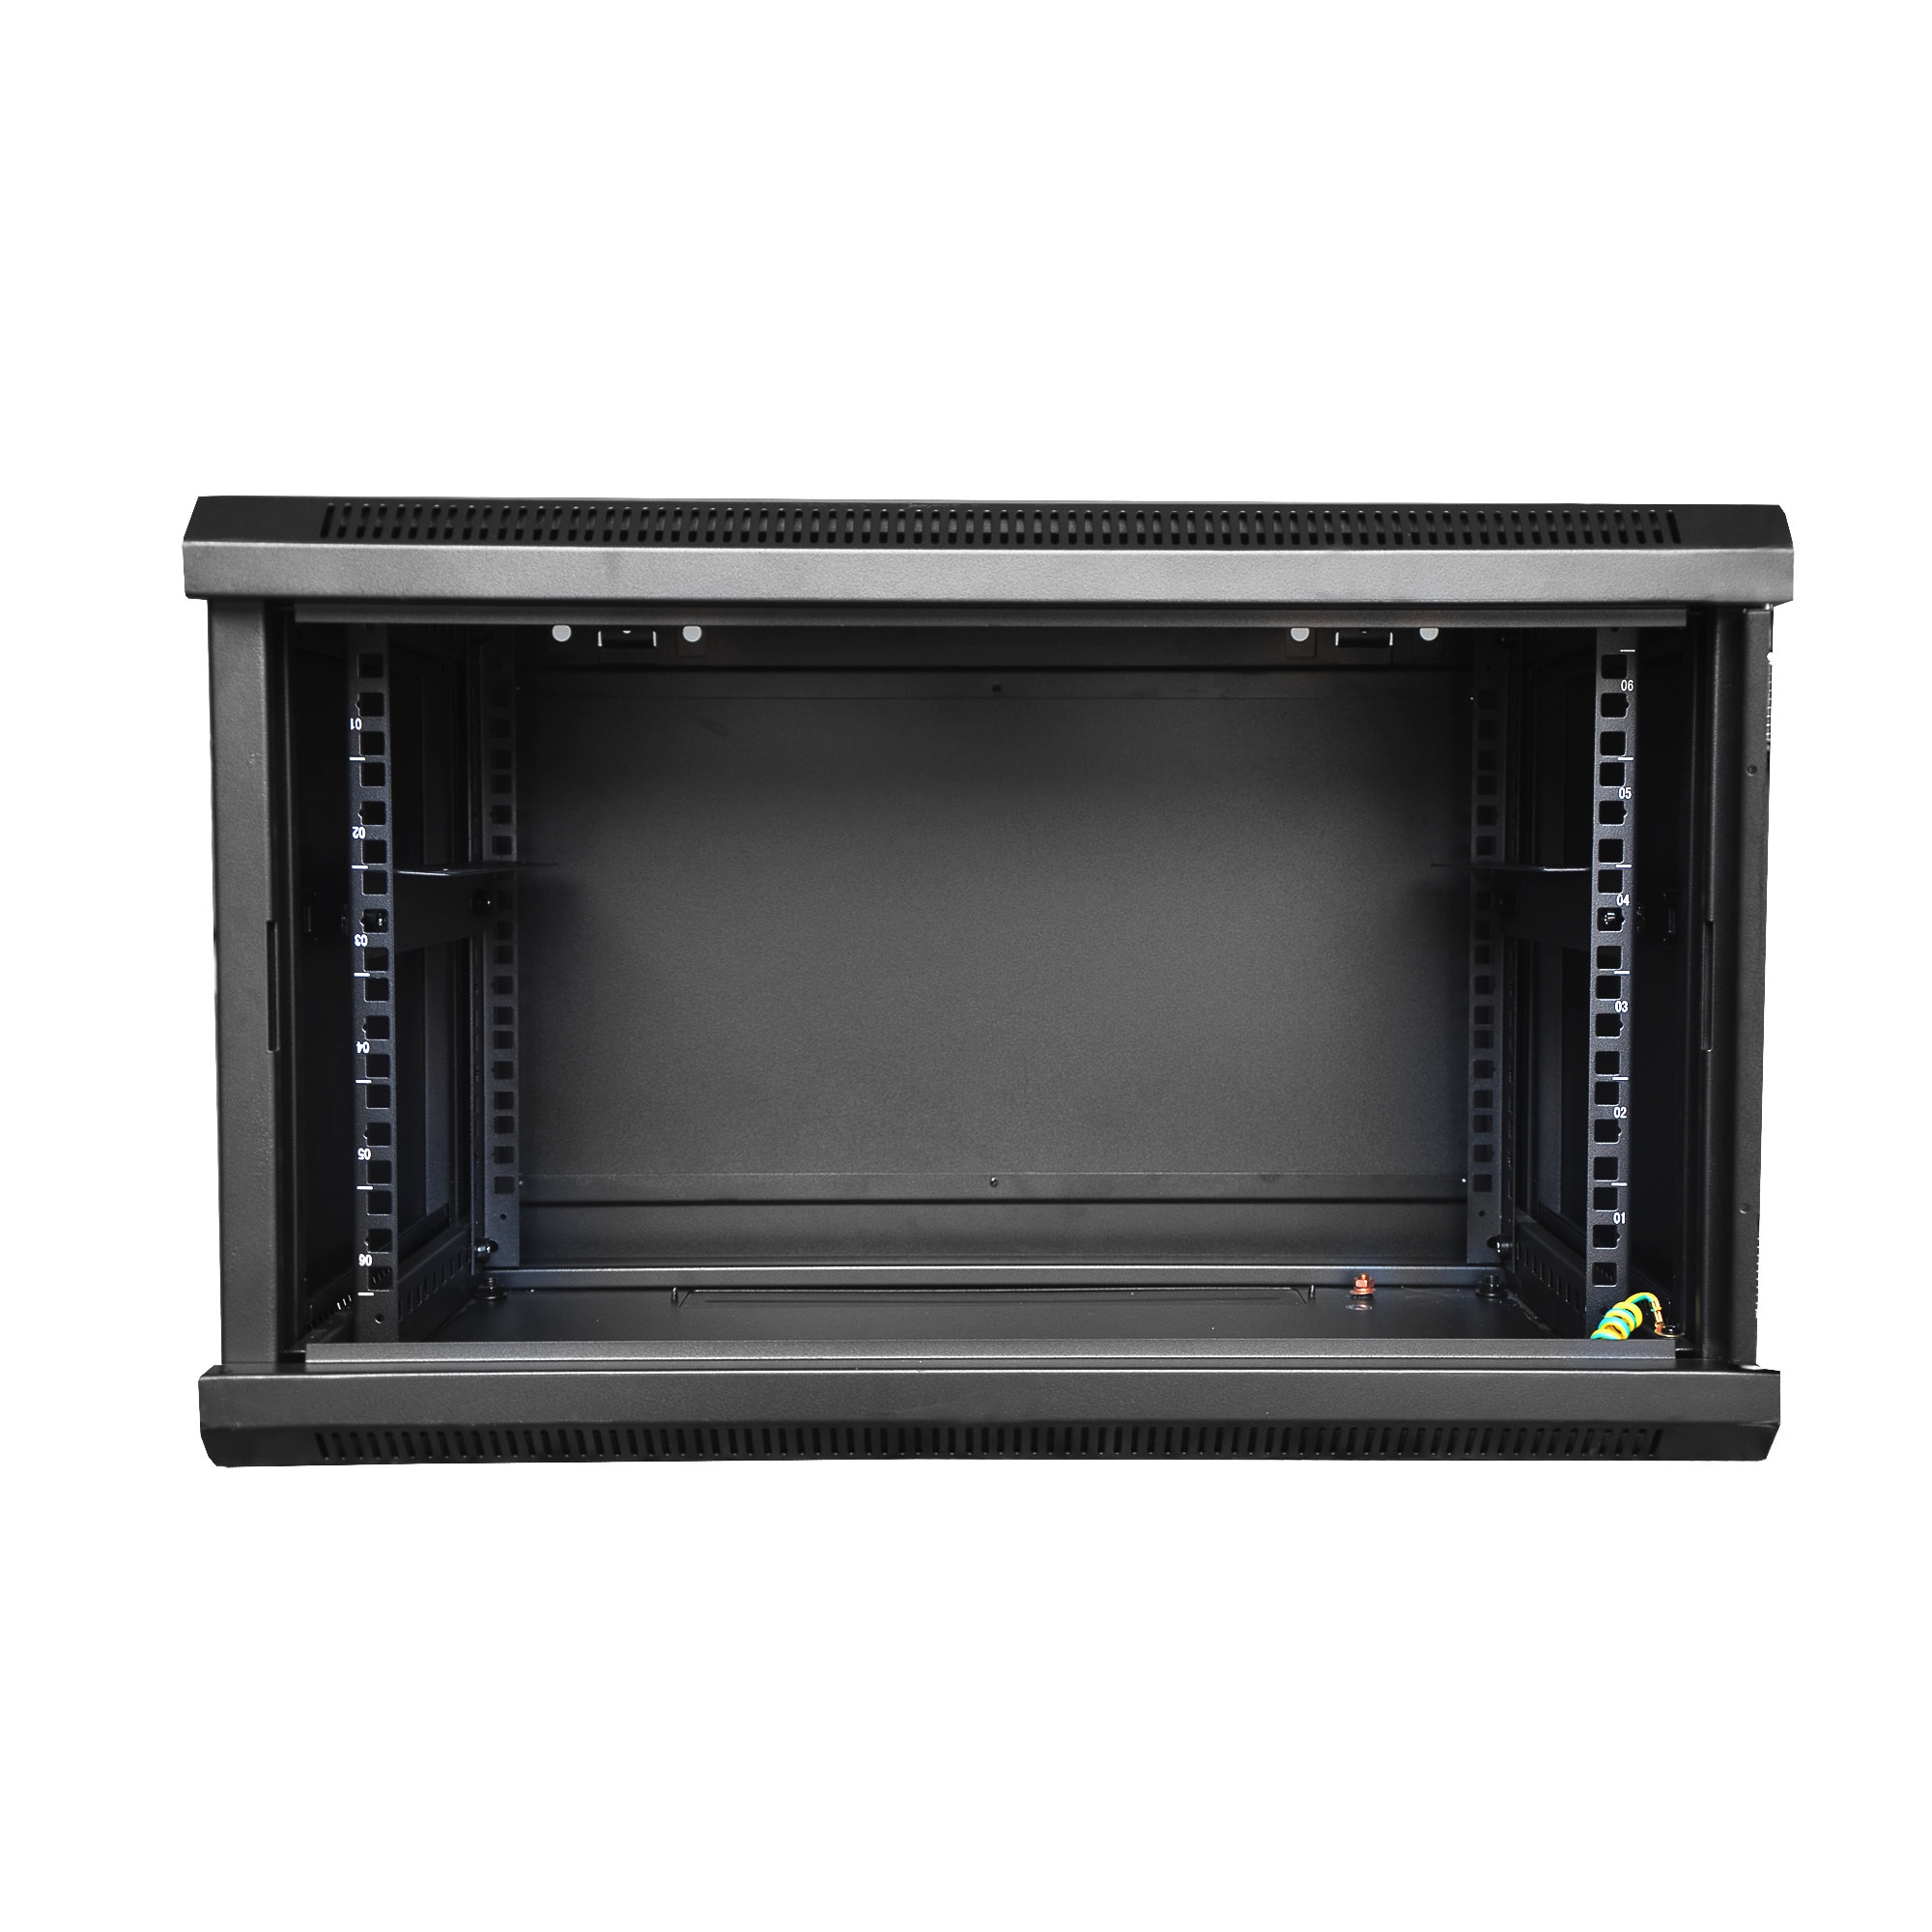 toten distributor we gctlnetworking cabinet authorized rack pin the server of com are